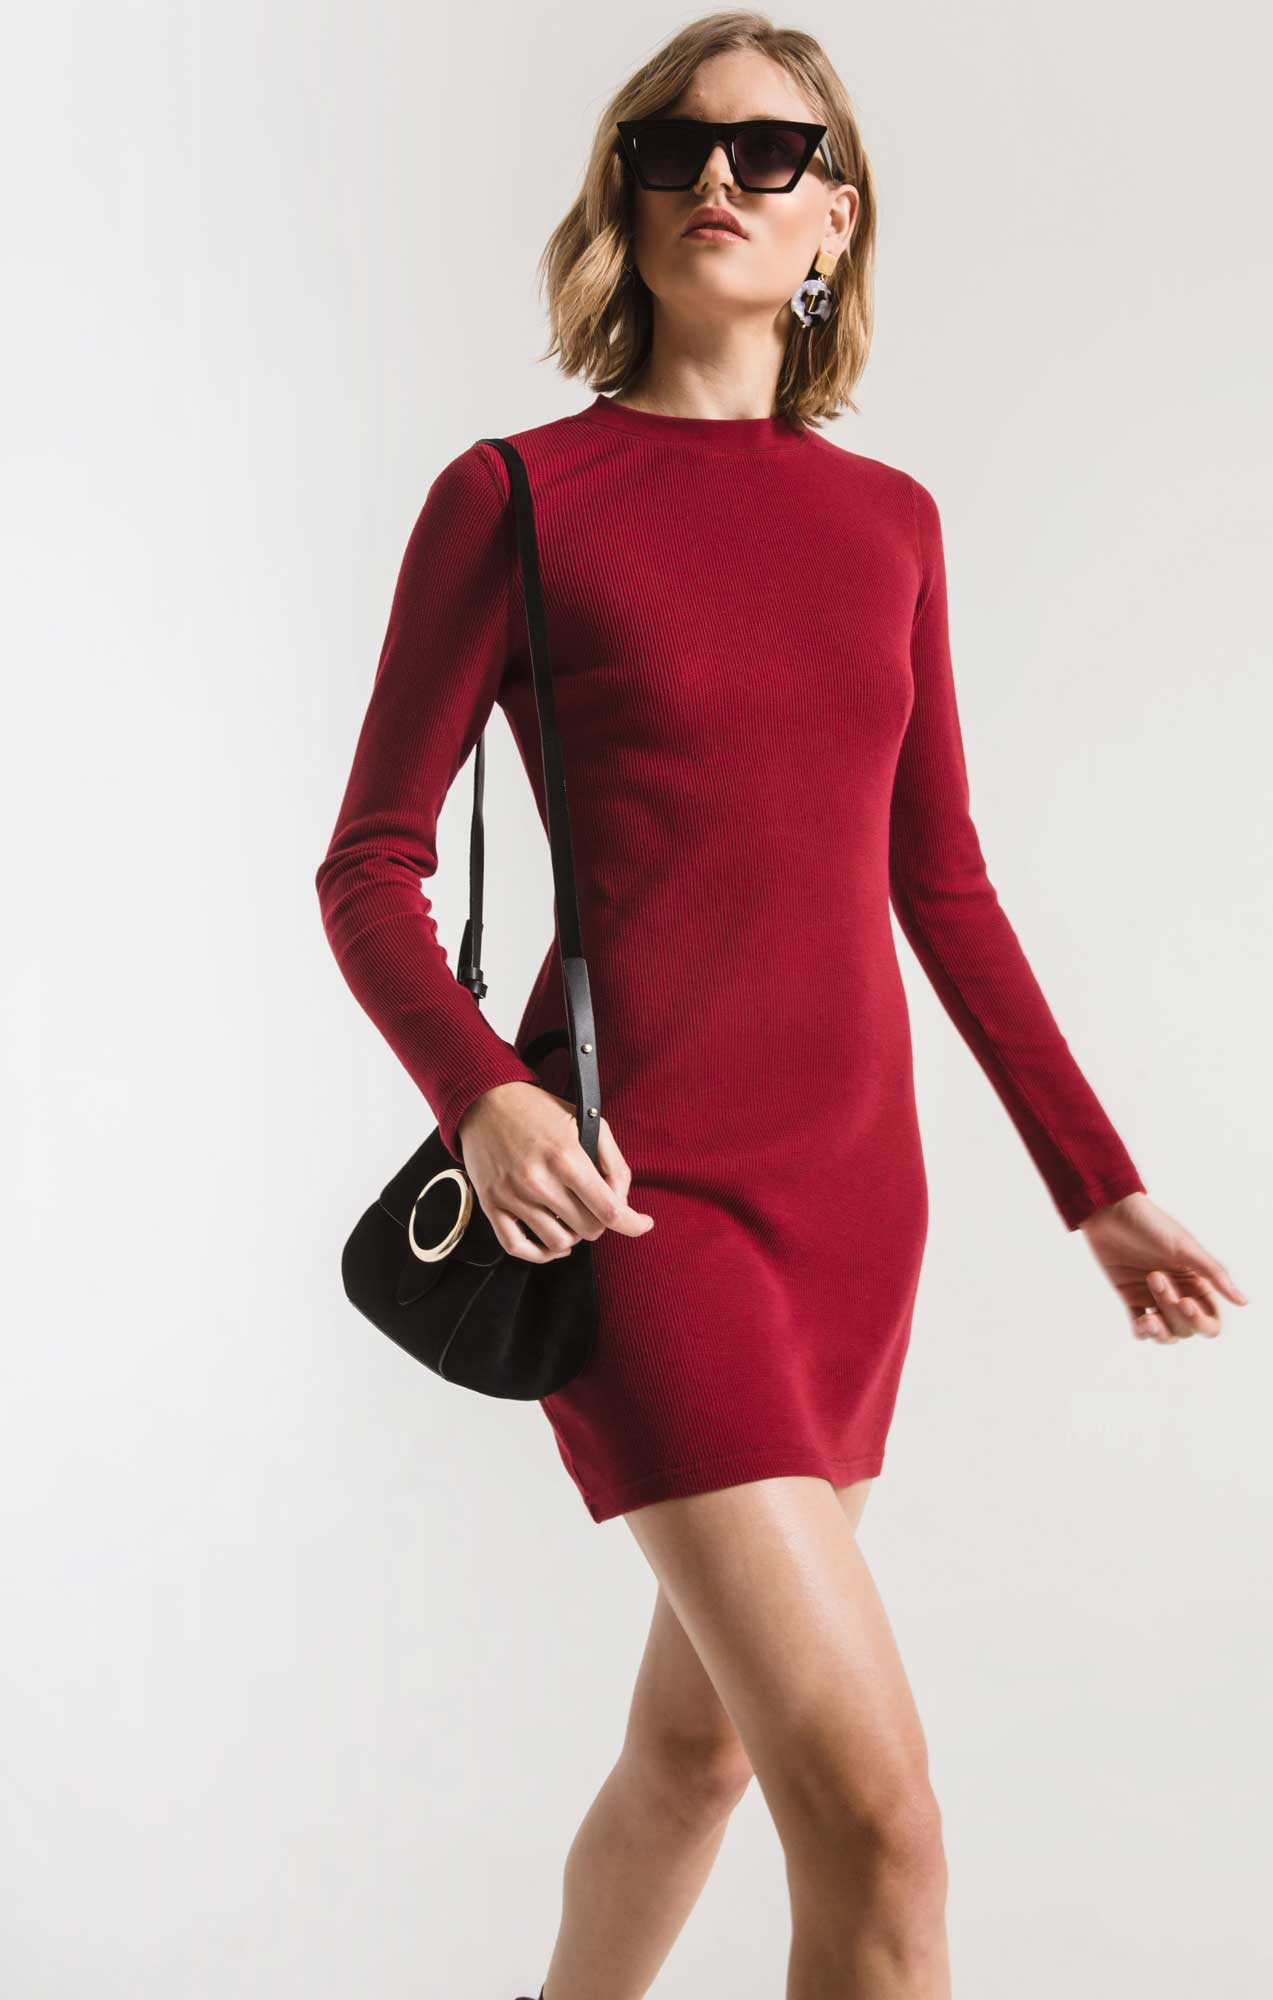 Dresses The Thermal Long Sleeve Dress Rumba Red